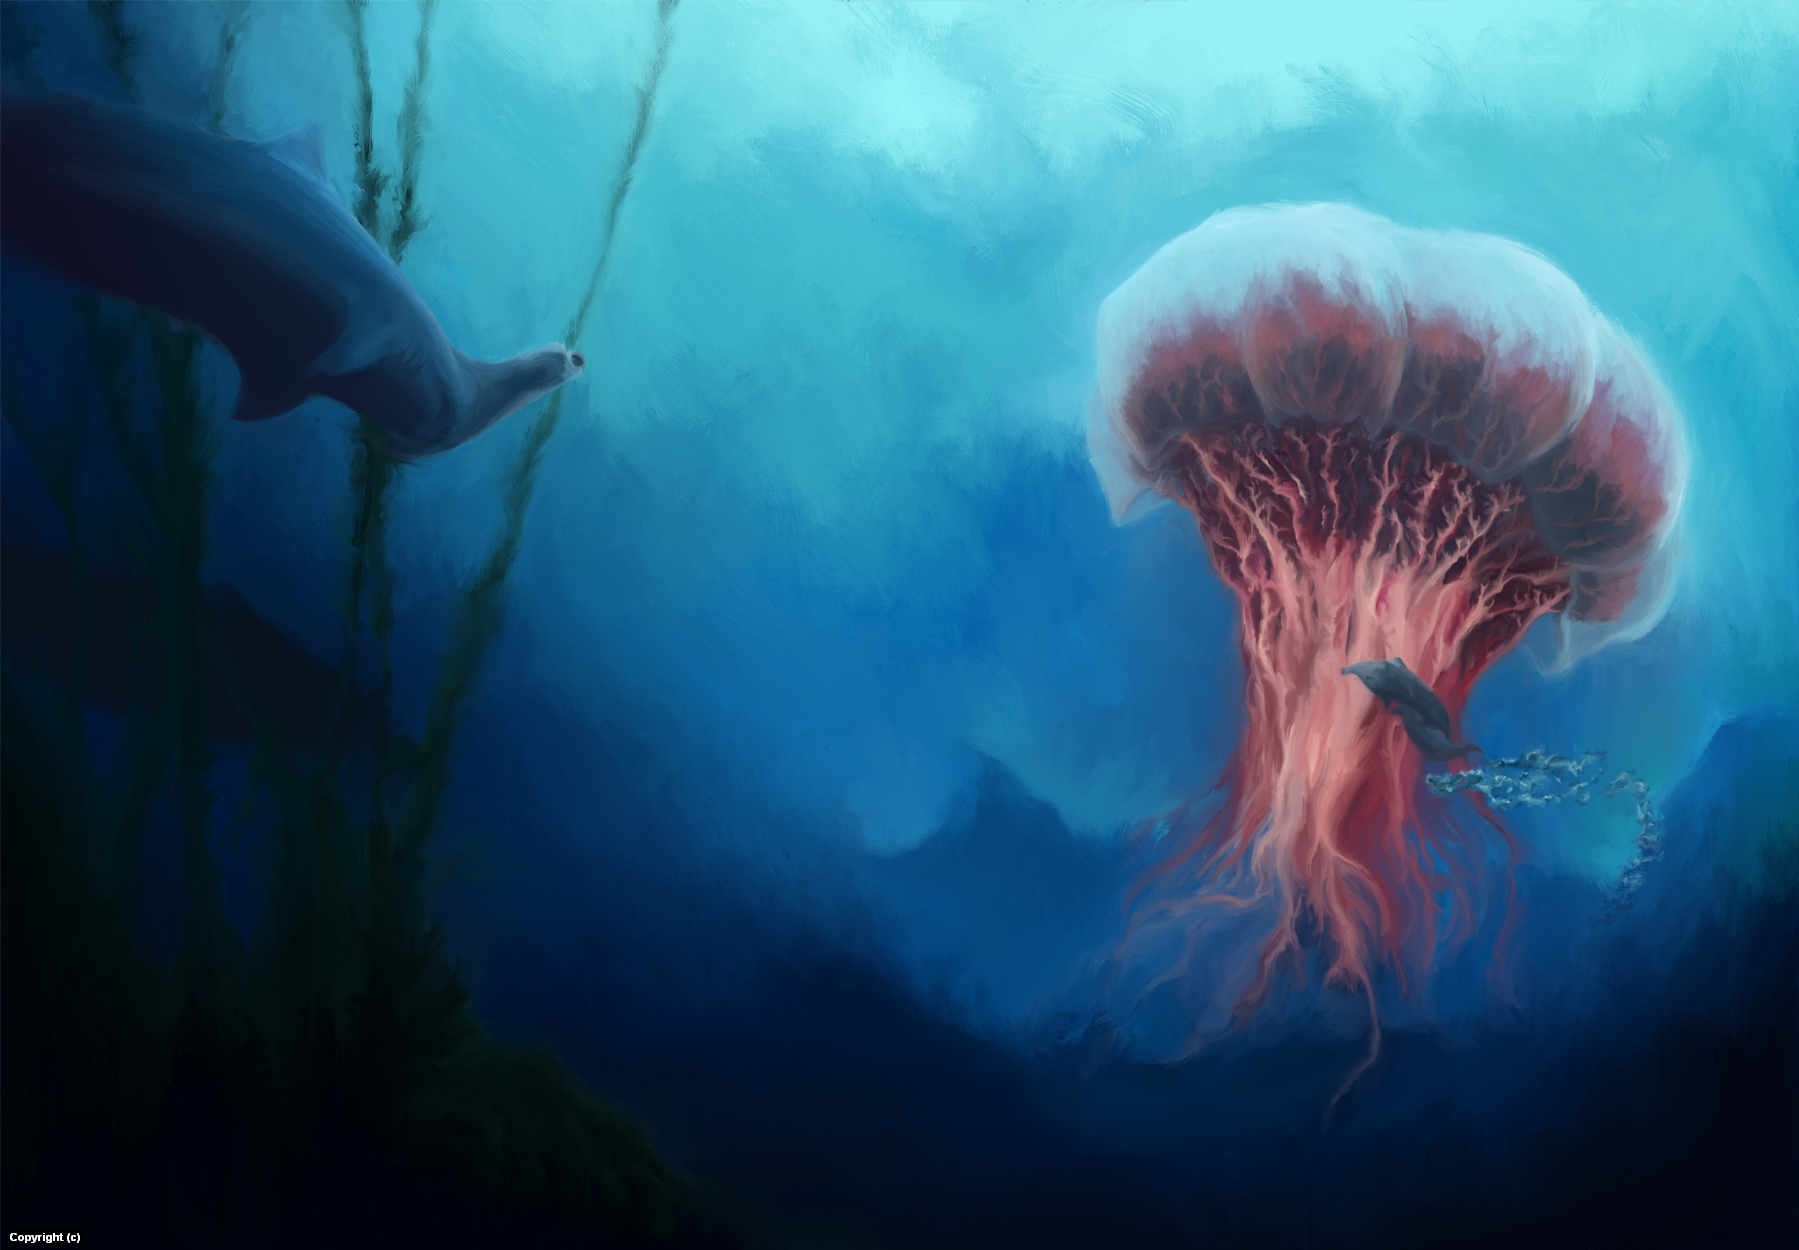 Ascent from the Depths Artwork by Hal Wayland